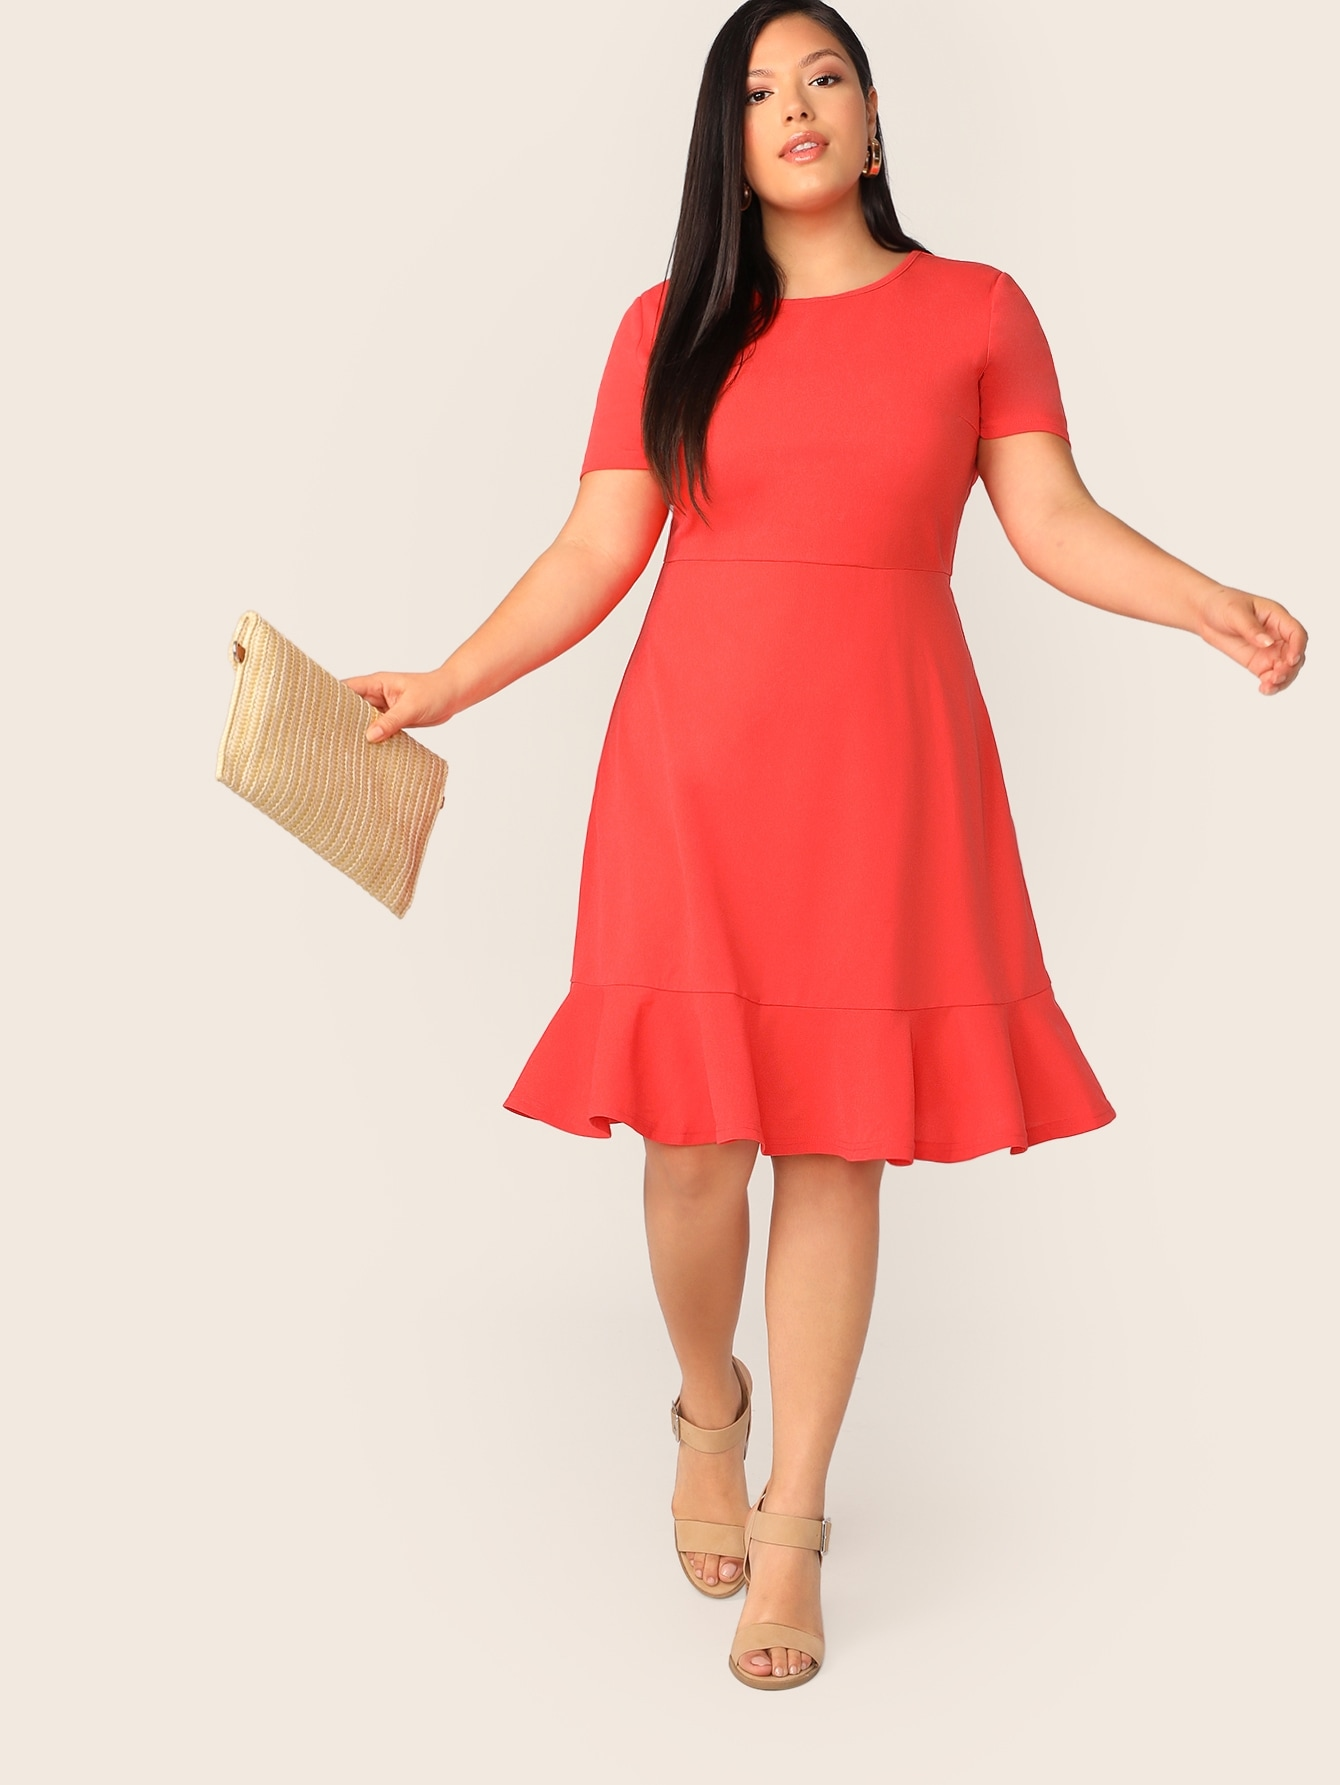 Neon Colored Plus Size Dresses - Gomes Weine AG